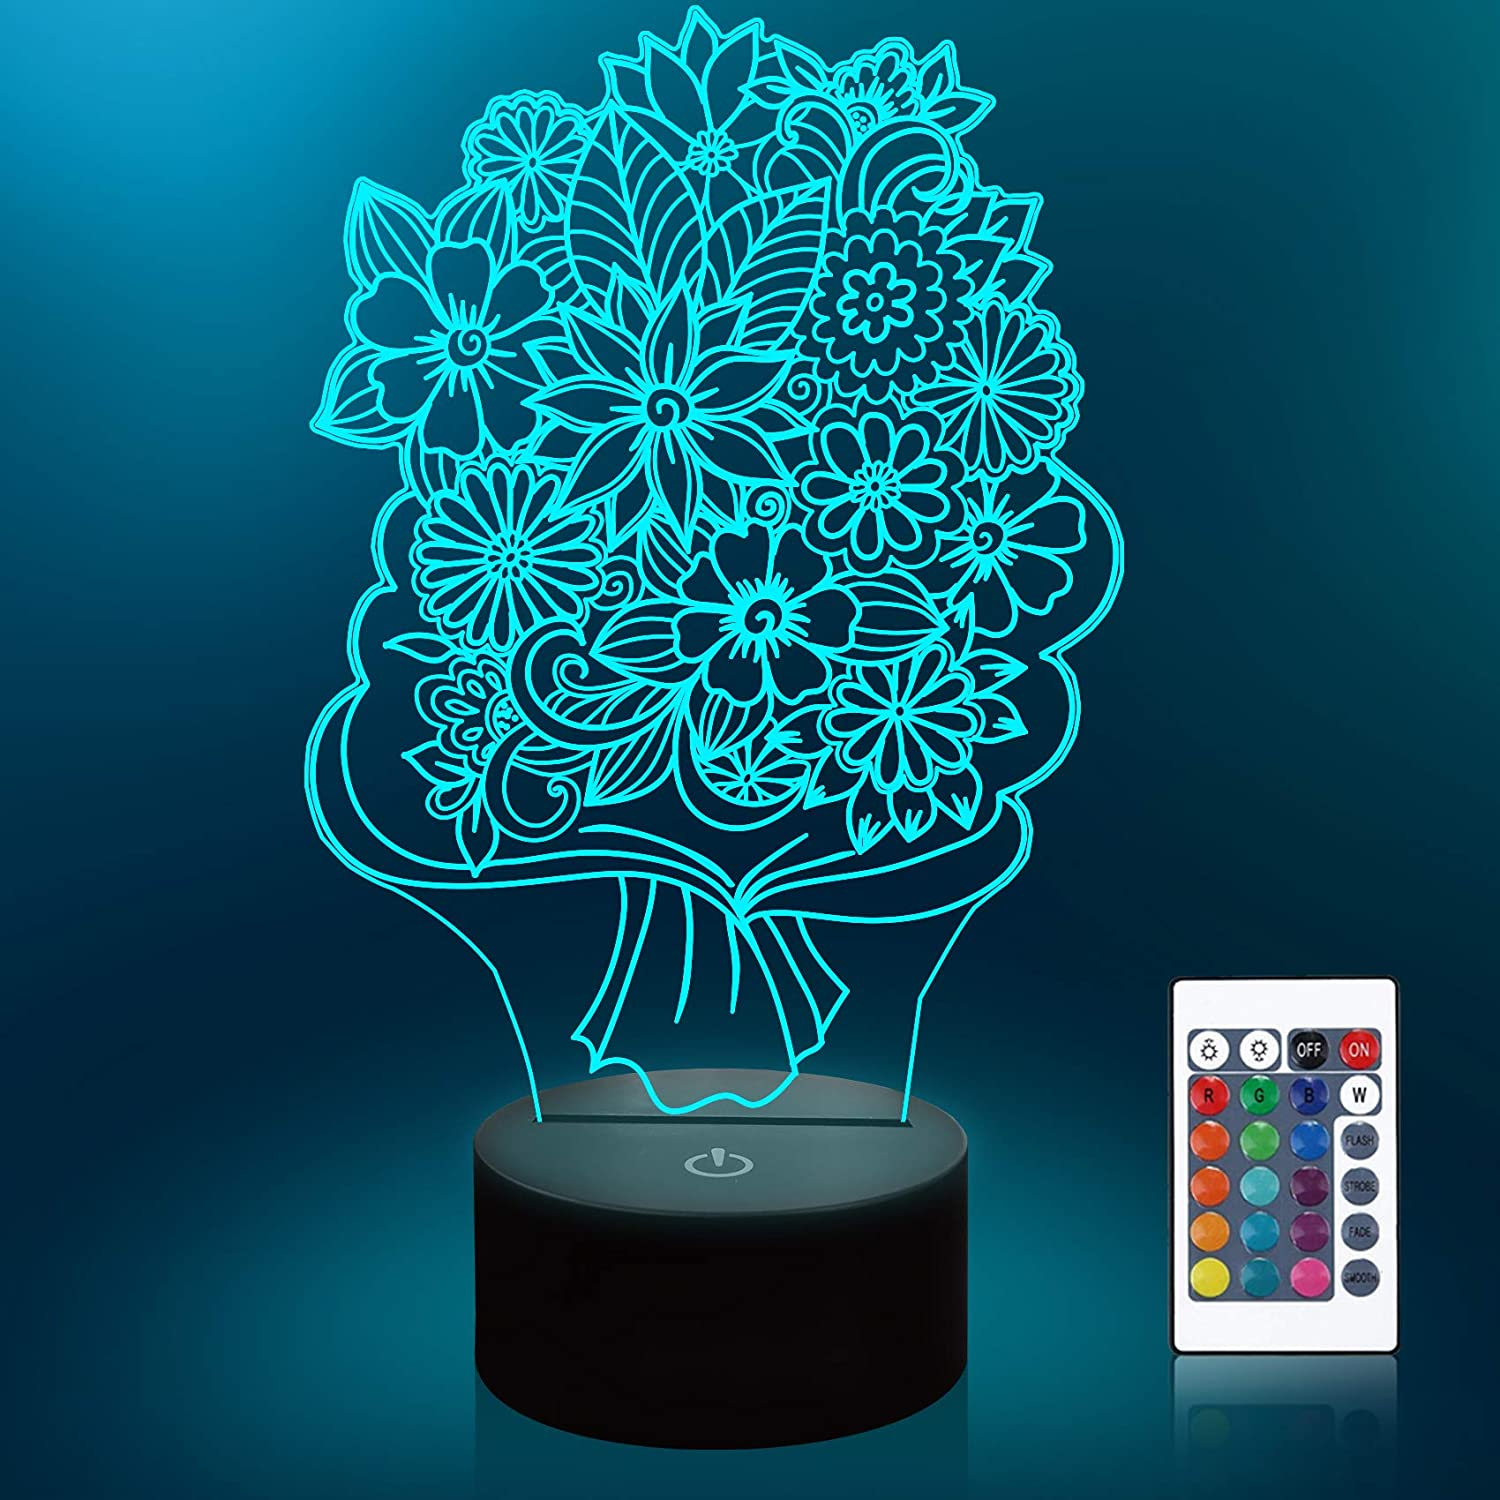 Lampeez 3D Flowers Lamp Night Light 3D Illusion lamp for Kids, 16 Colors Changing with Remote, Kids Bedroom Decor as Xmas Holiday Birthday Gifts for Boys Girls